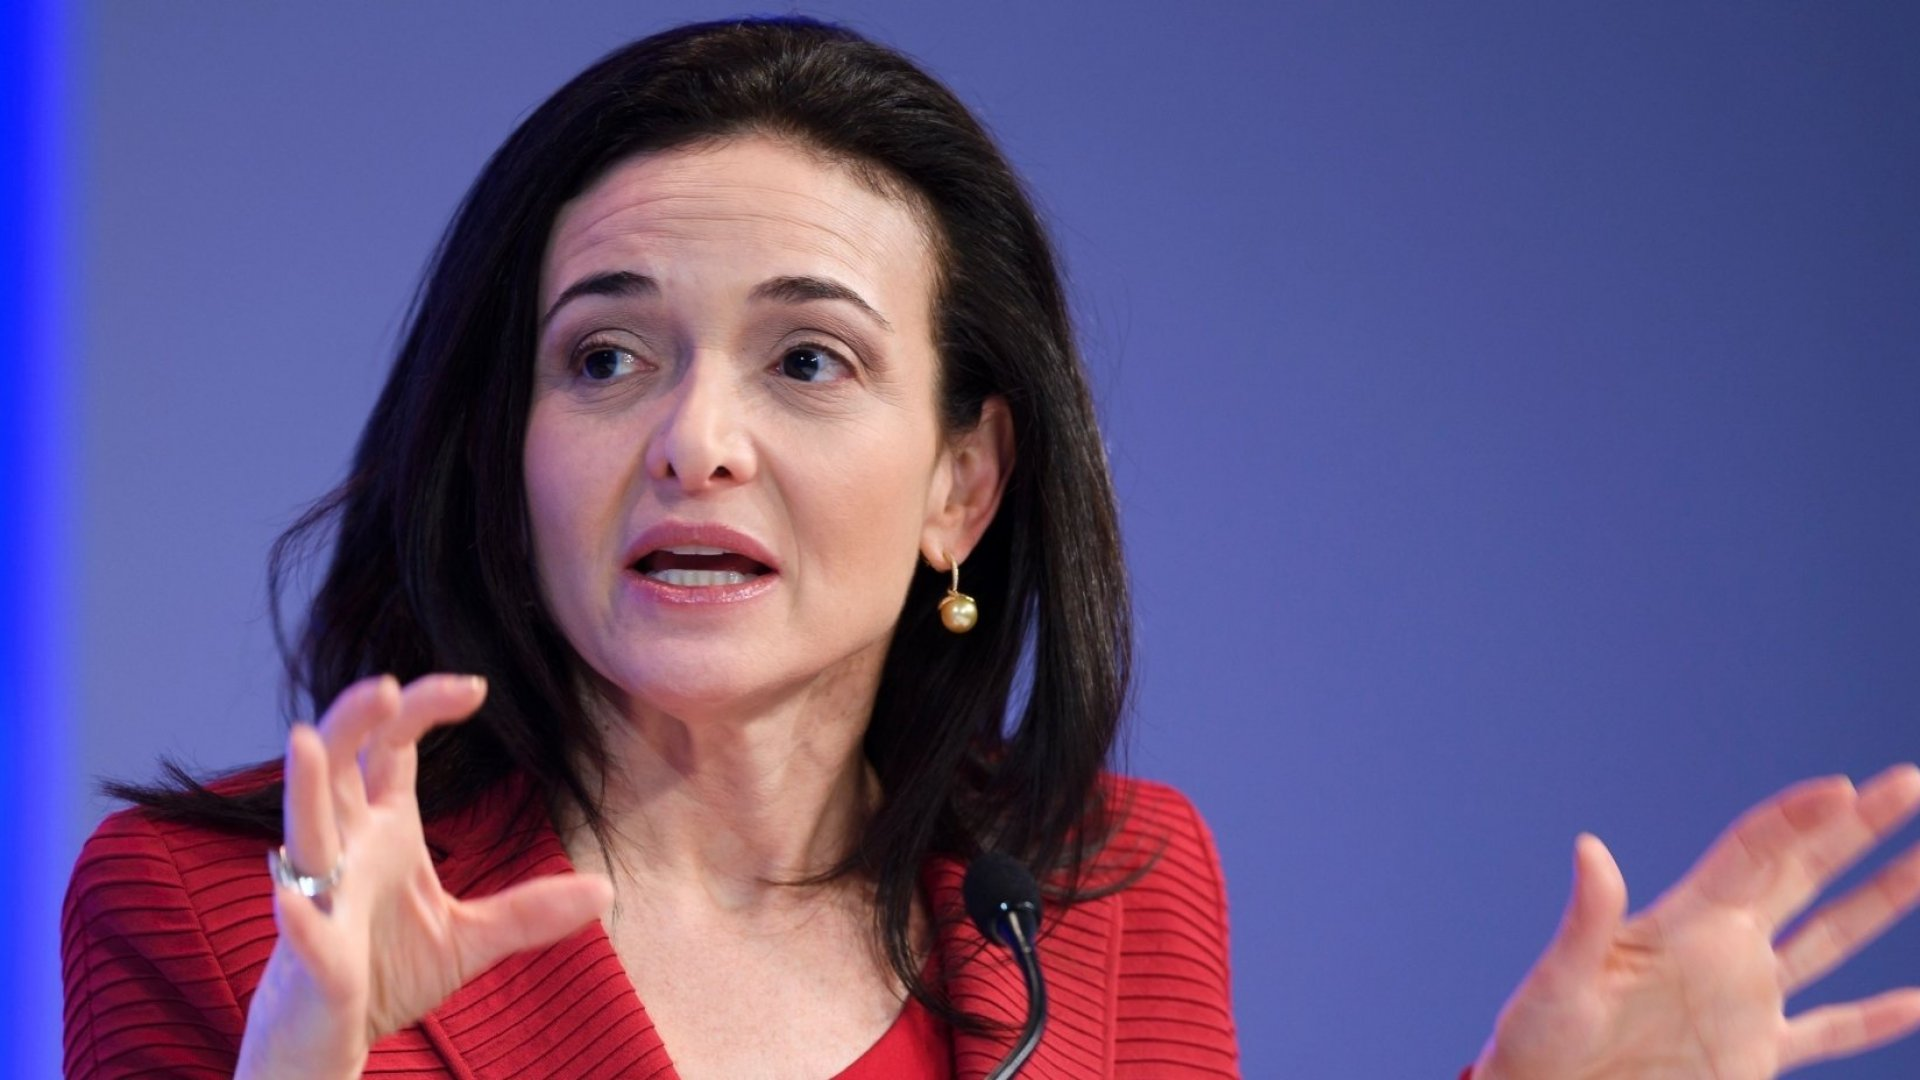 Facebook's Sheryl Sandberg Says Experience Does Not Matter Much (but This 1 Thing Does Big Time)